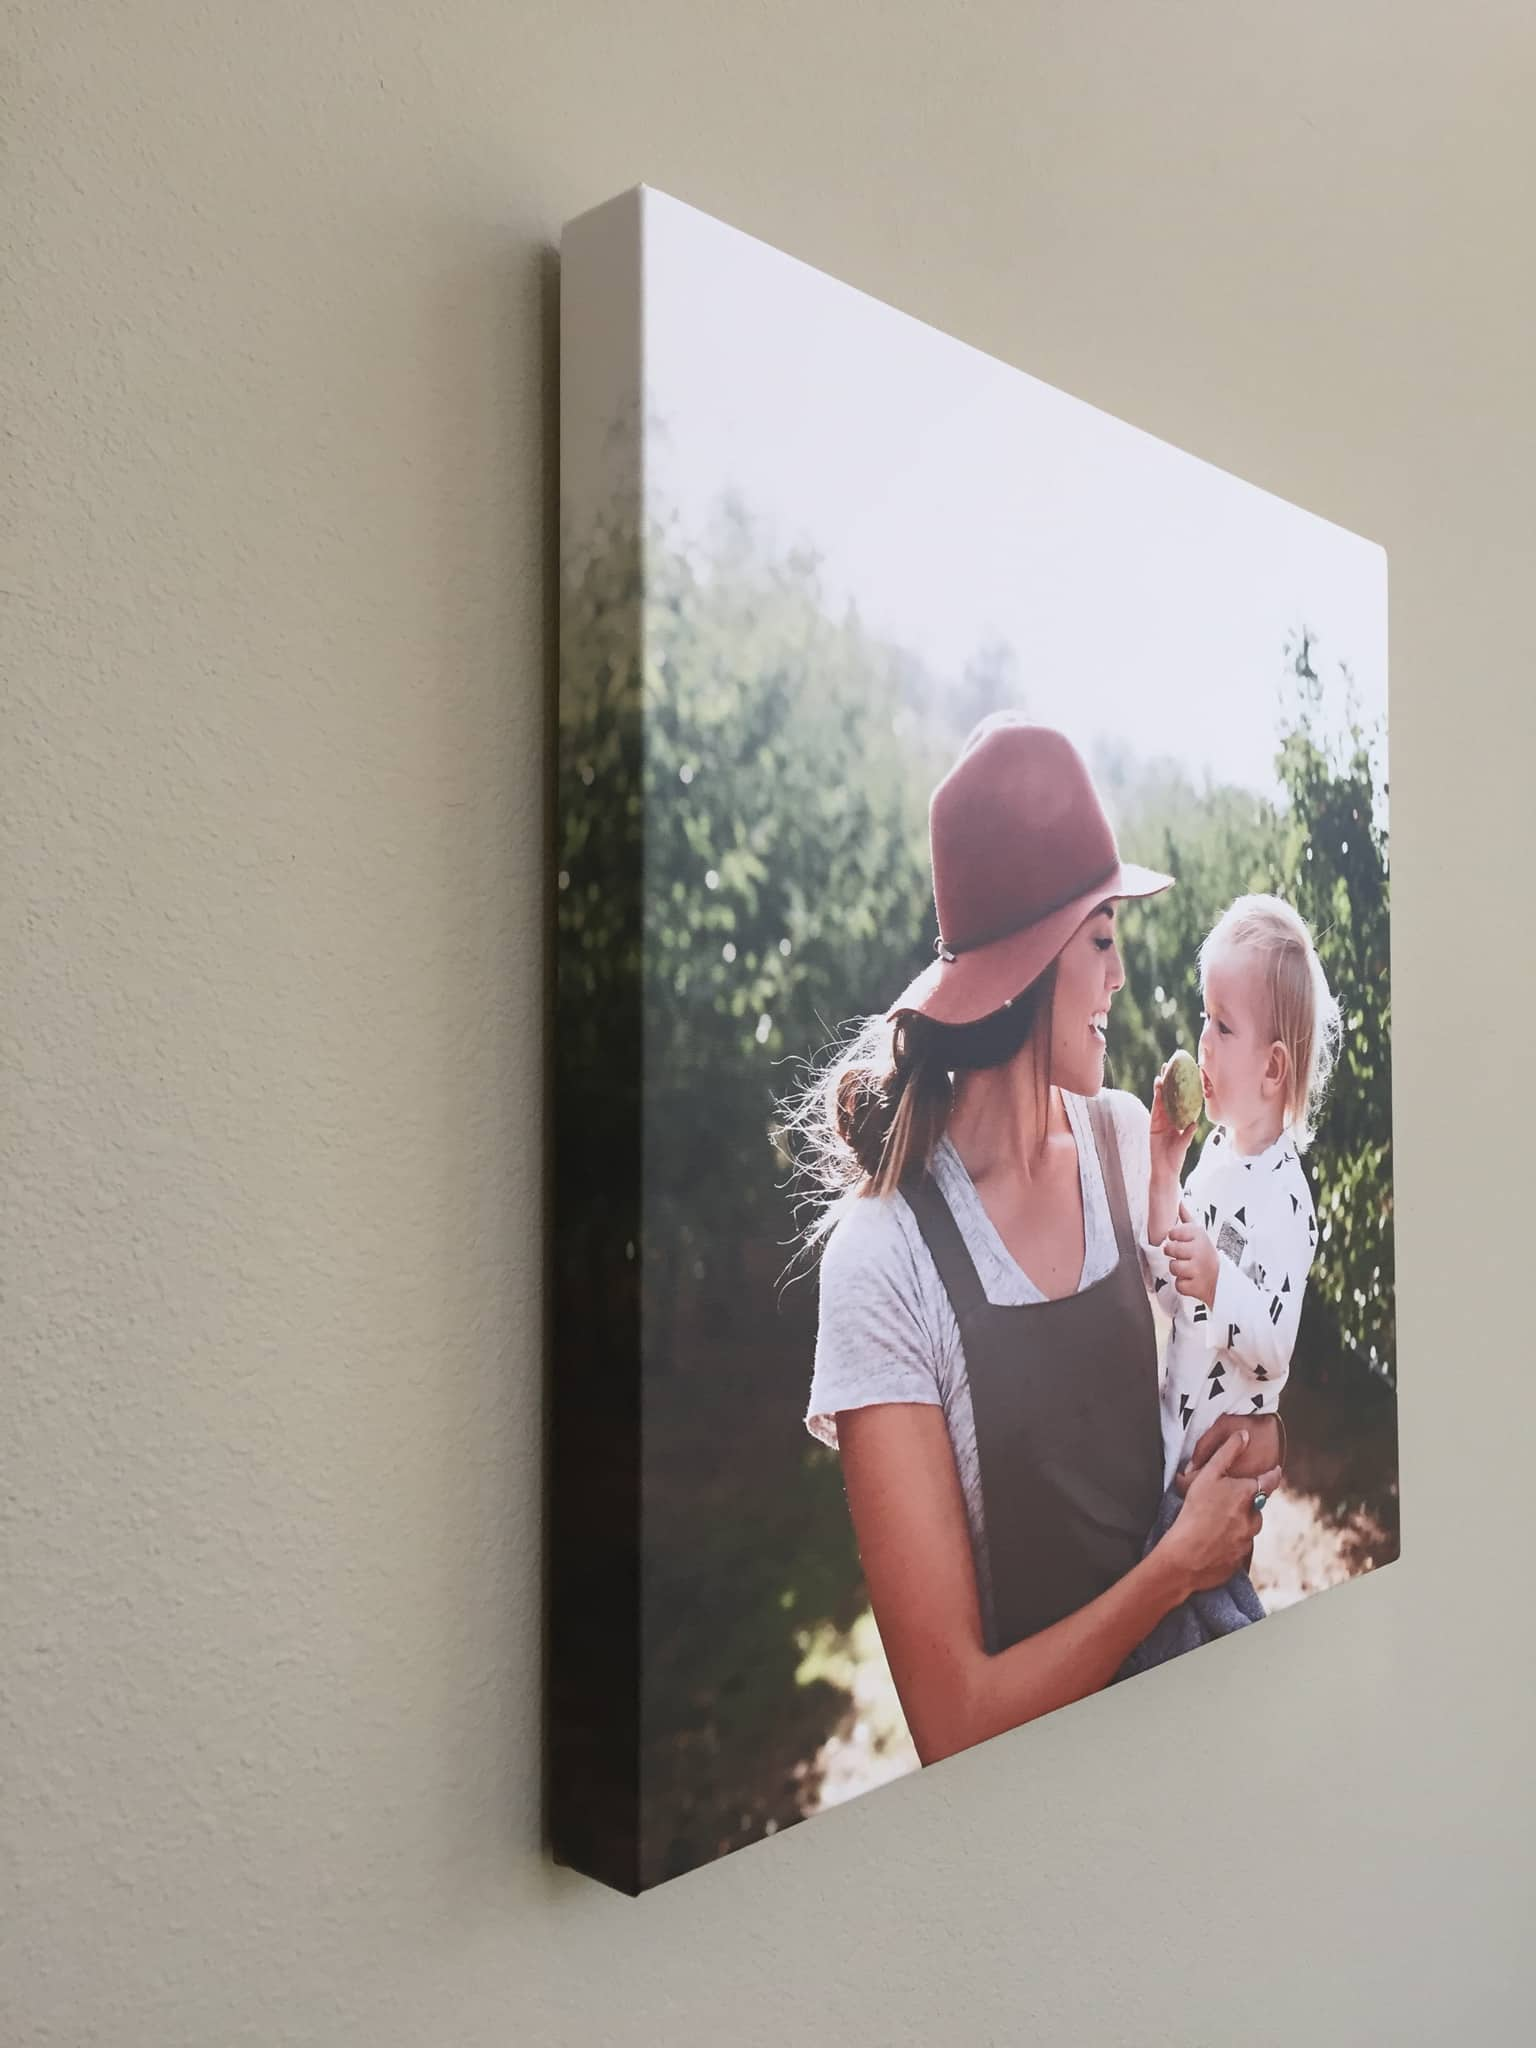 How to Get a High Quality Canvas Print image